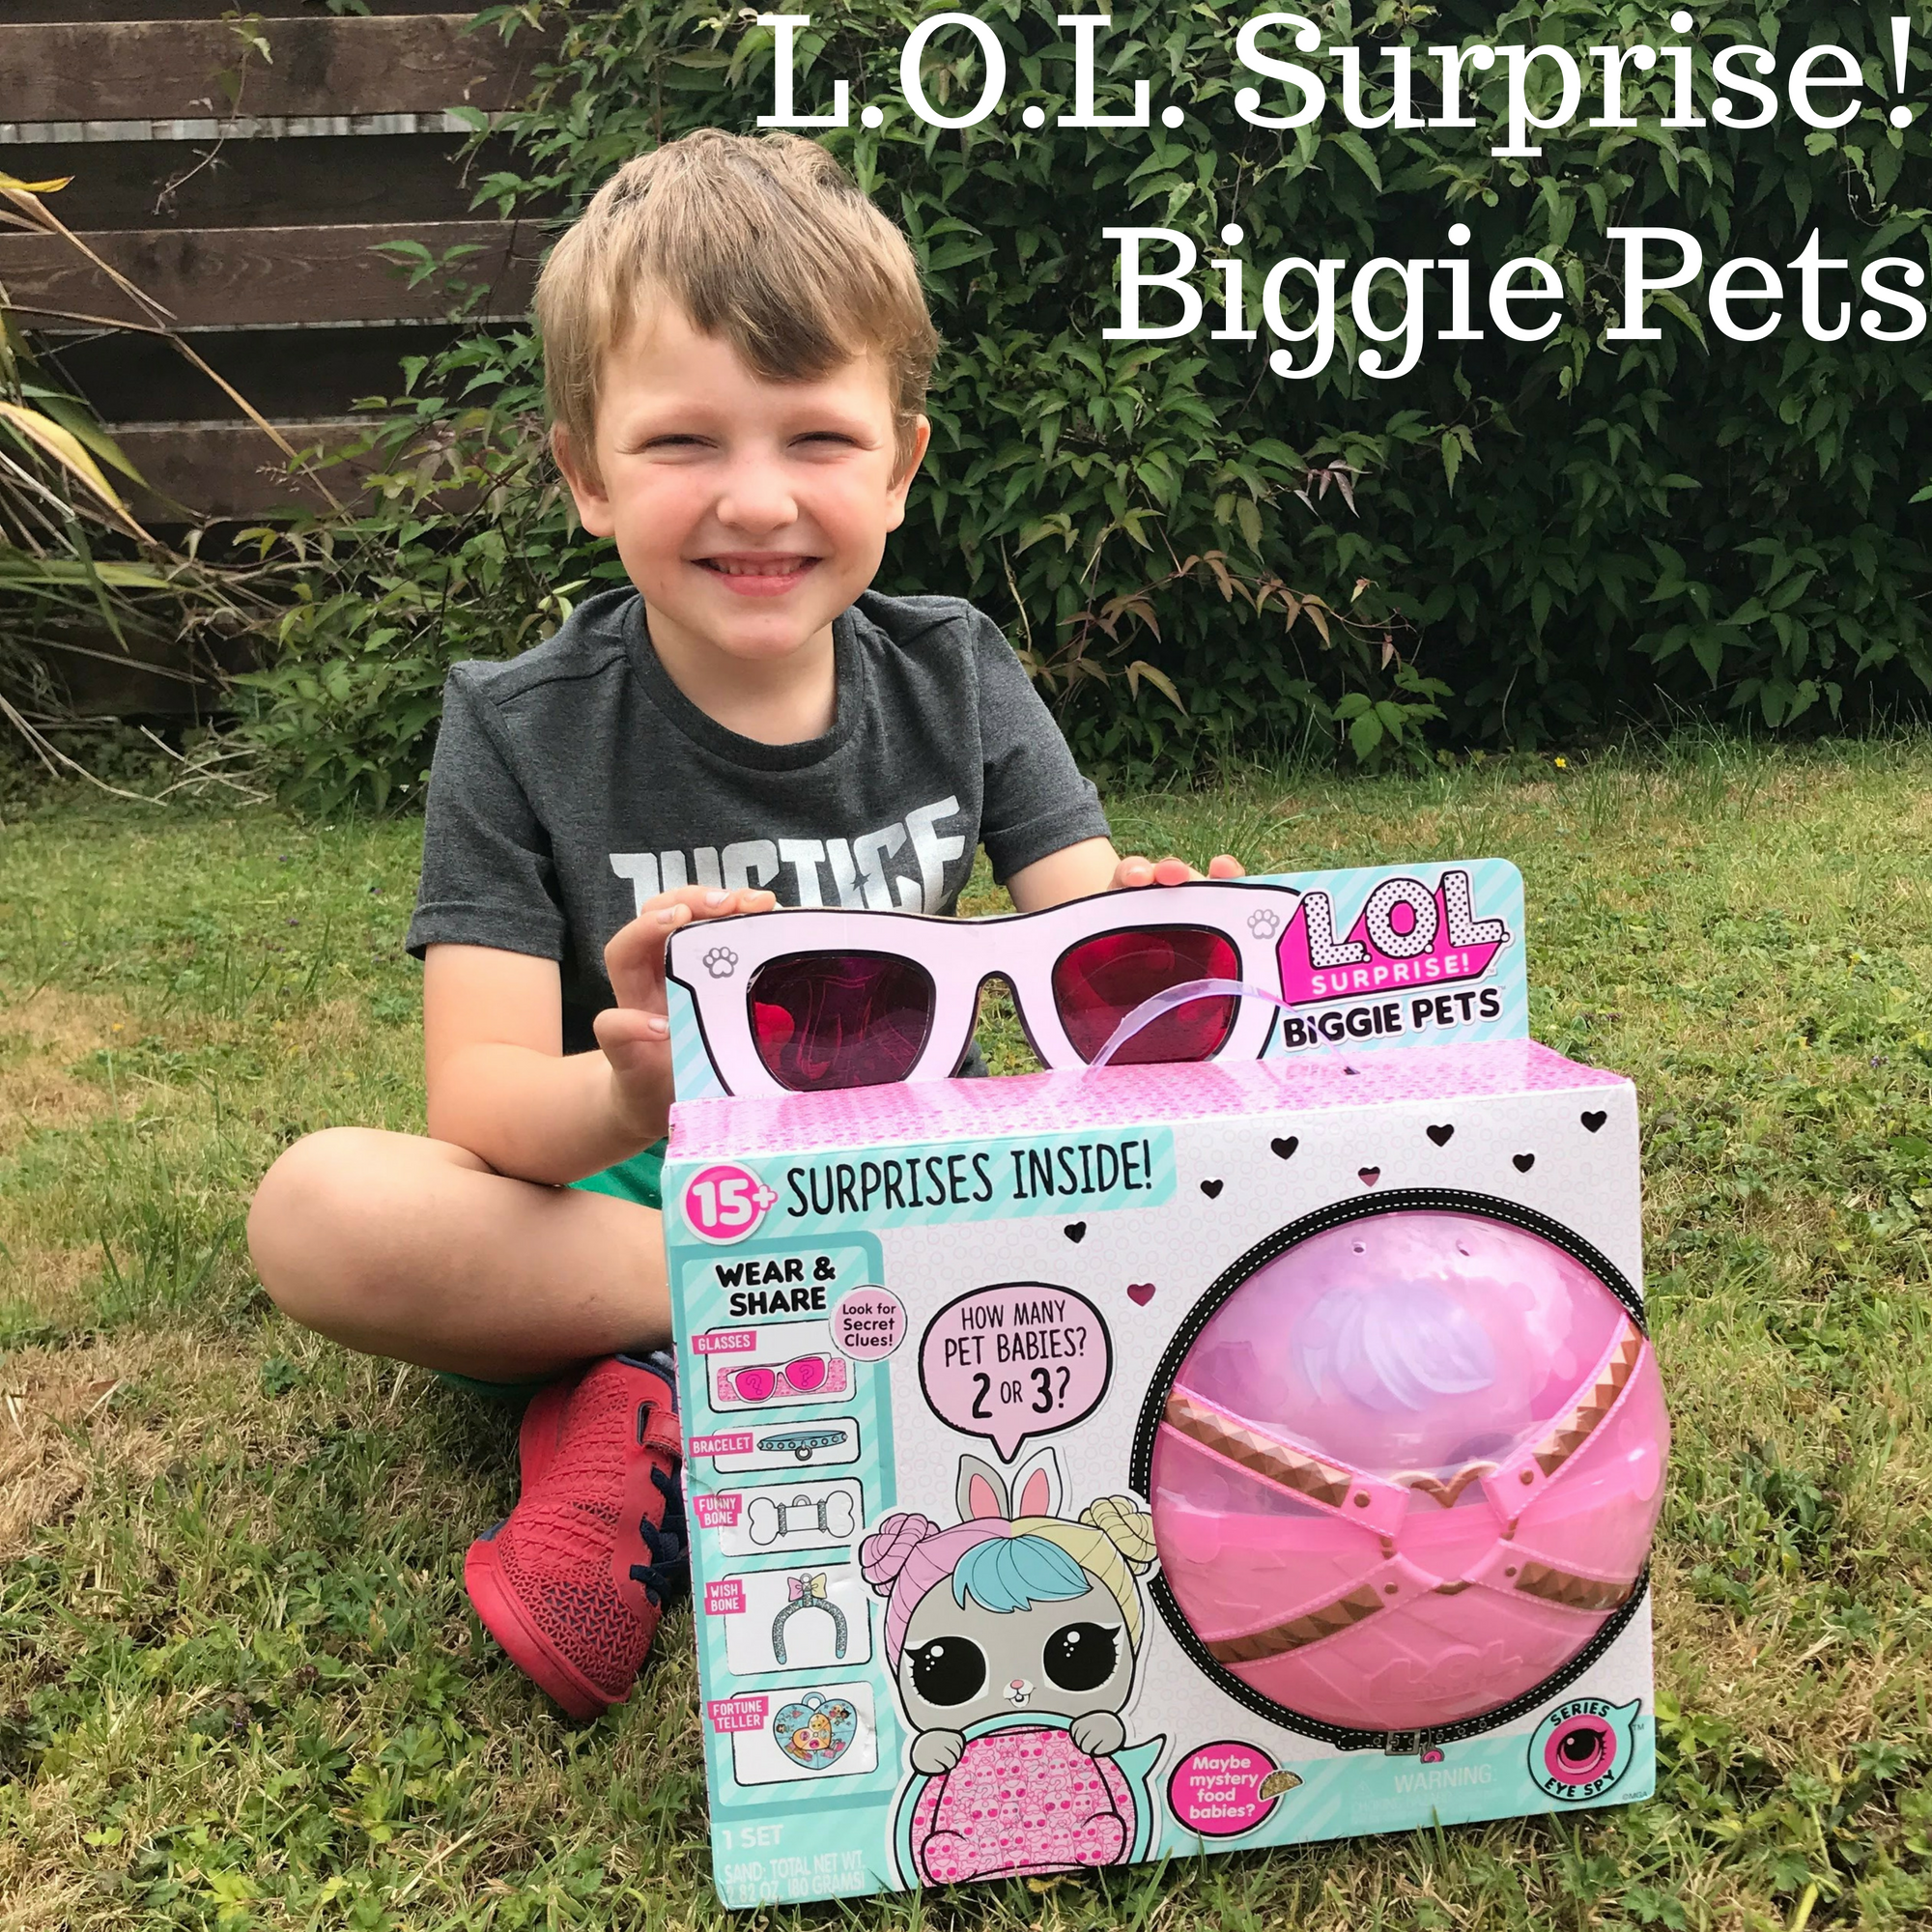 L.O.L. Surprise Biggie Pets